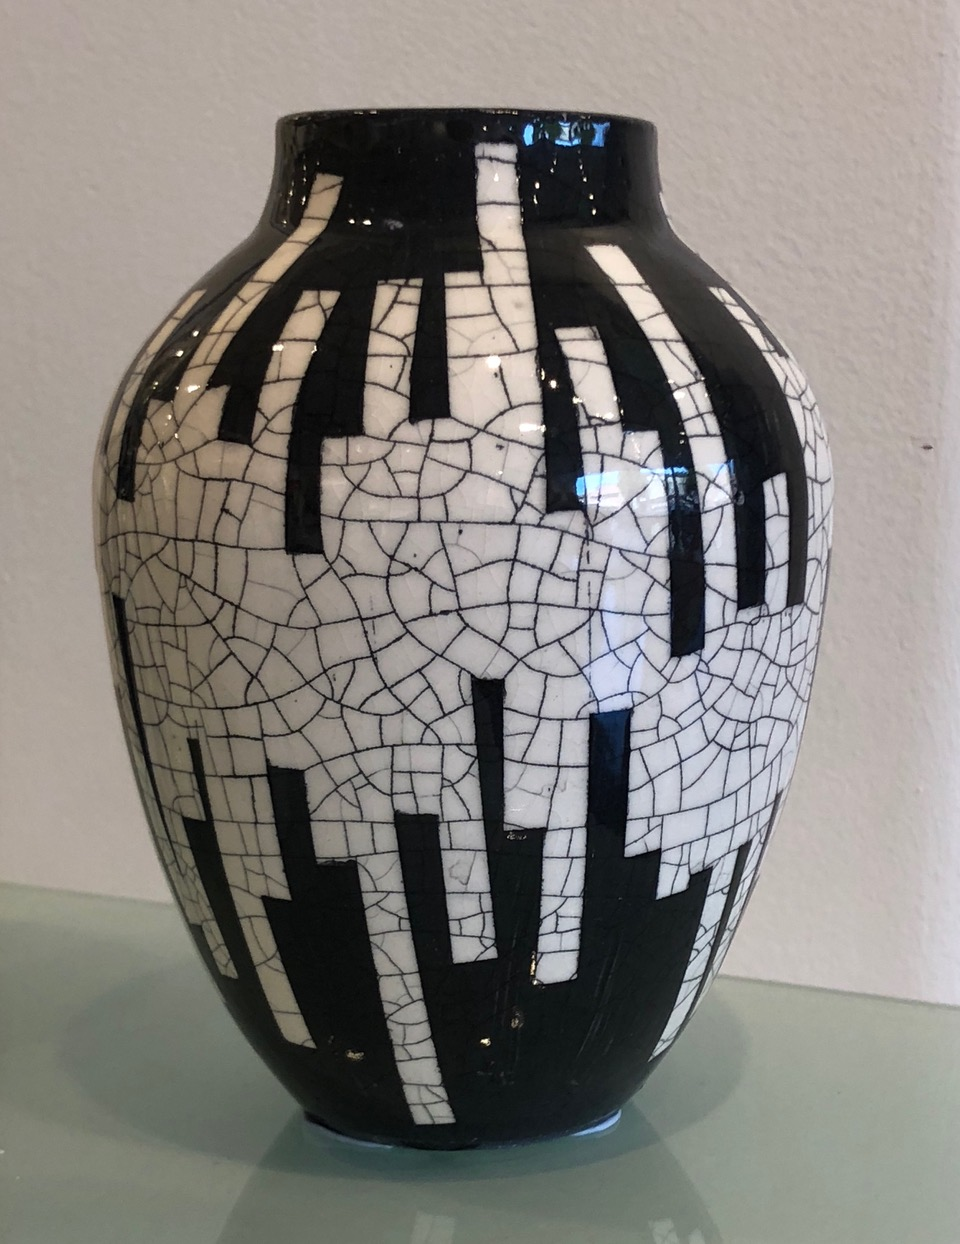 Untitled (Black and White Crackled Vase) (2018) by Andrew Frank